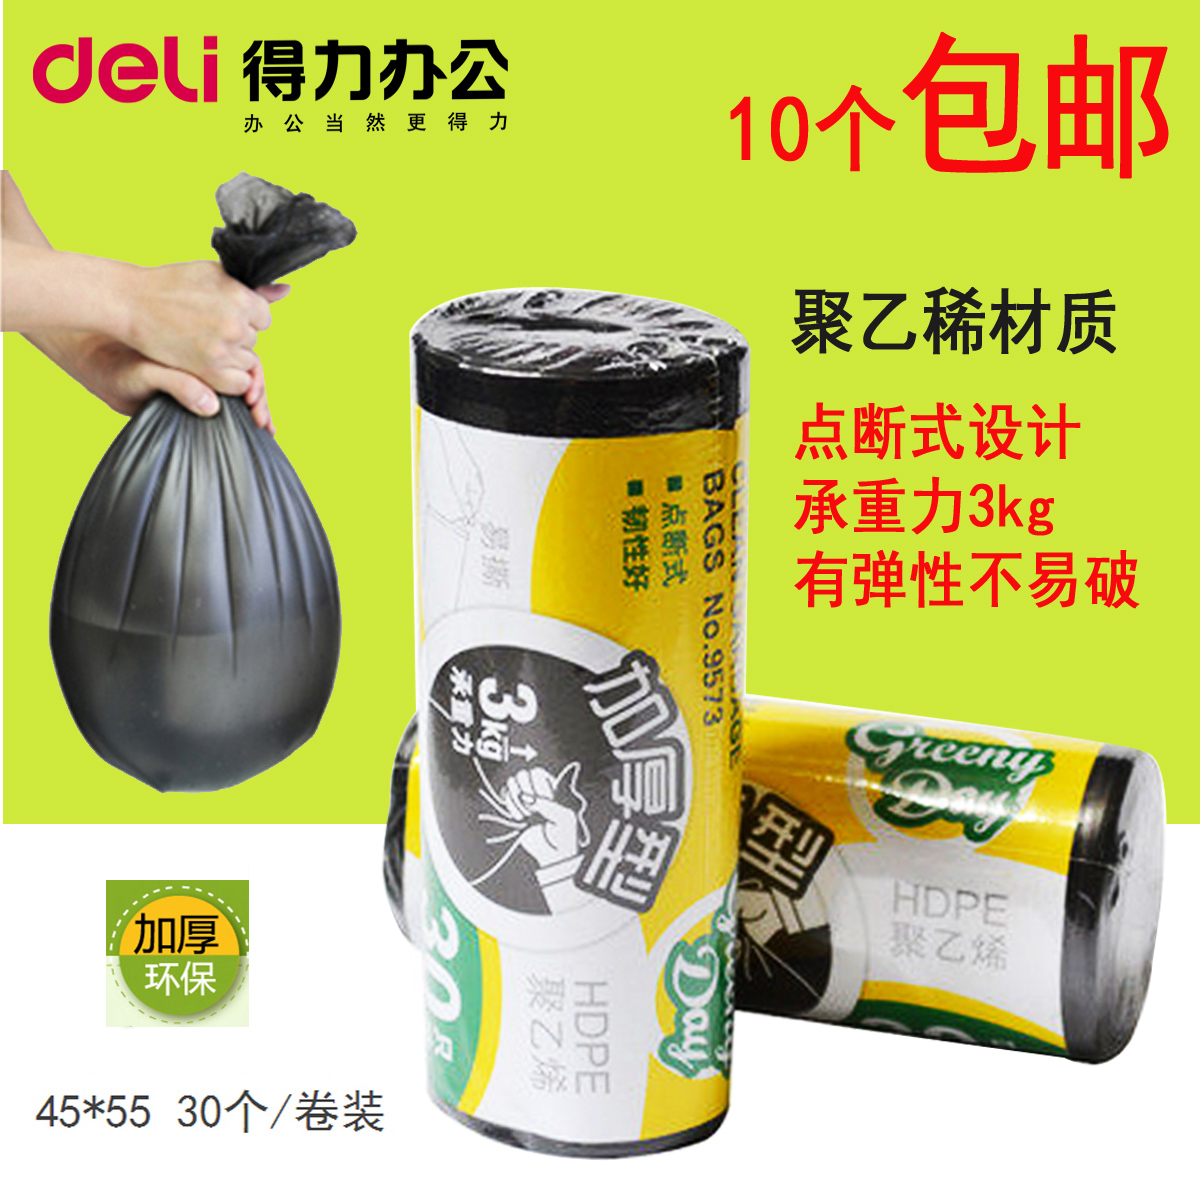 Free shipping deli 9573 home office garbage bags thicker plastic bags paper bag off point 45*55 30 only installed